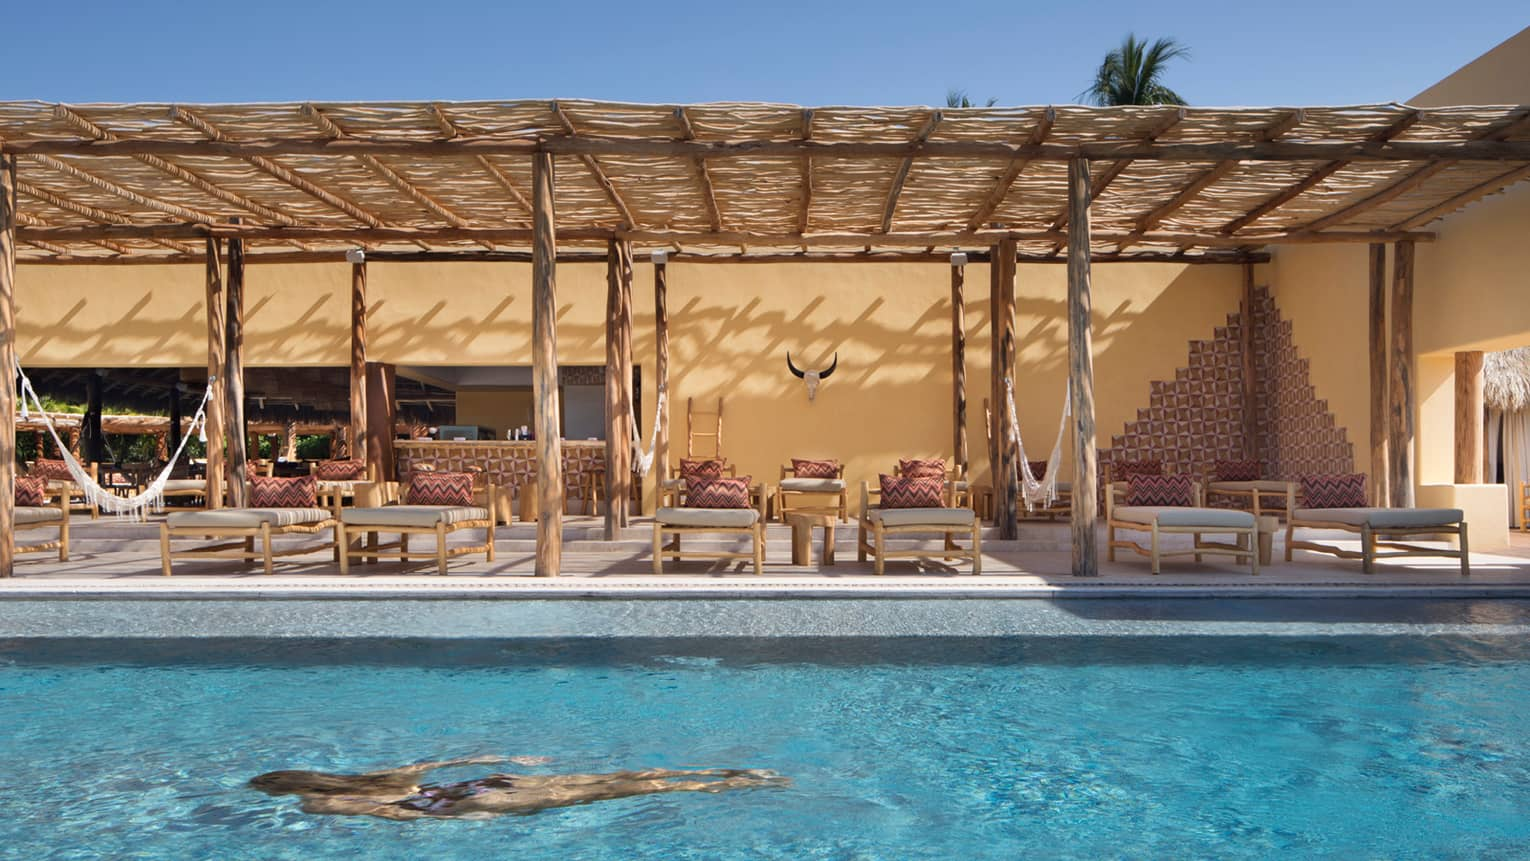 Woman swims in turquoise Tamai adults-only pool, lounge chairs under bamboo patio awning